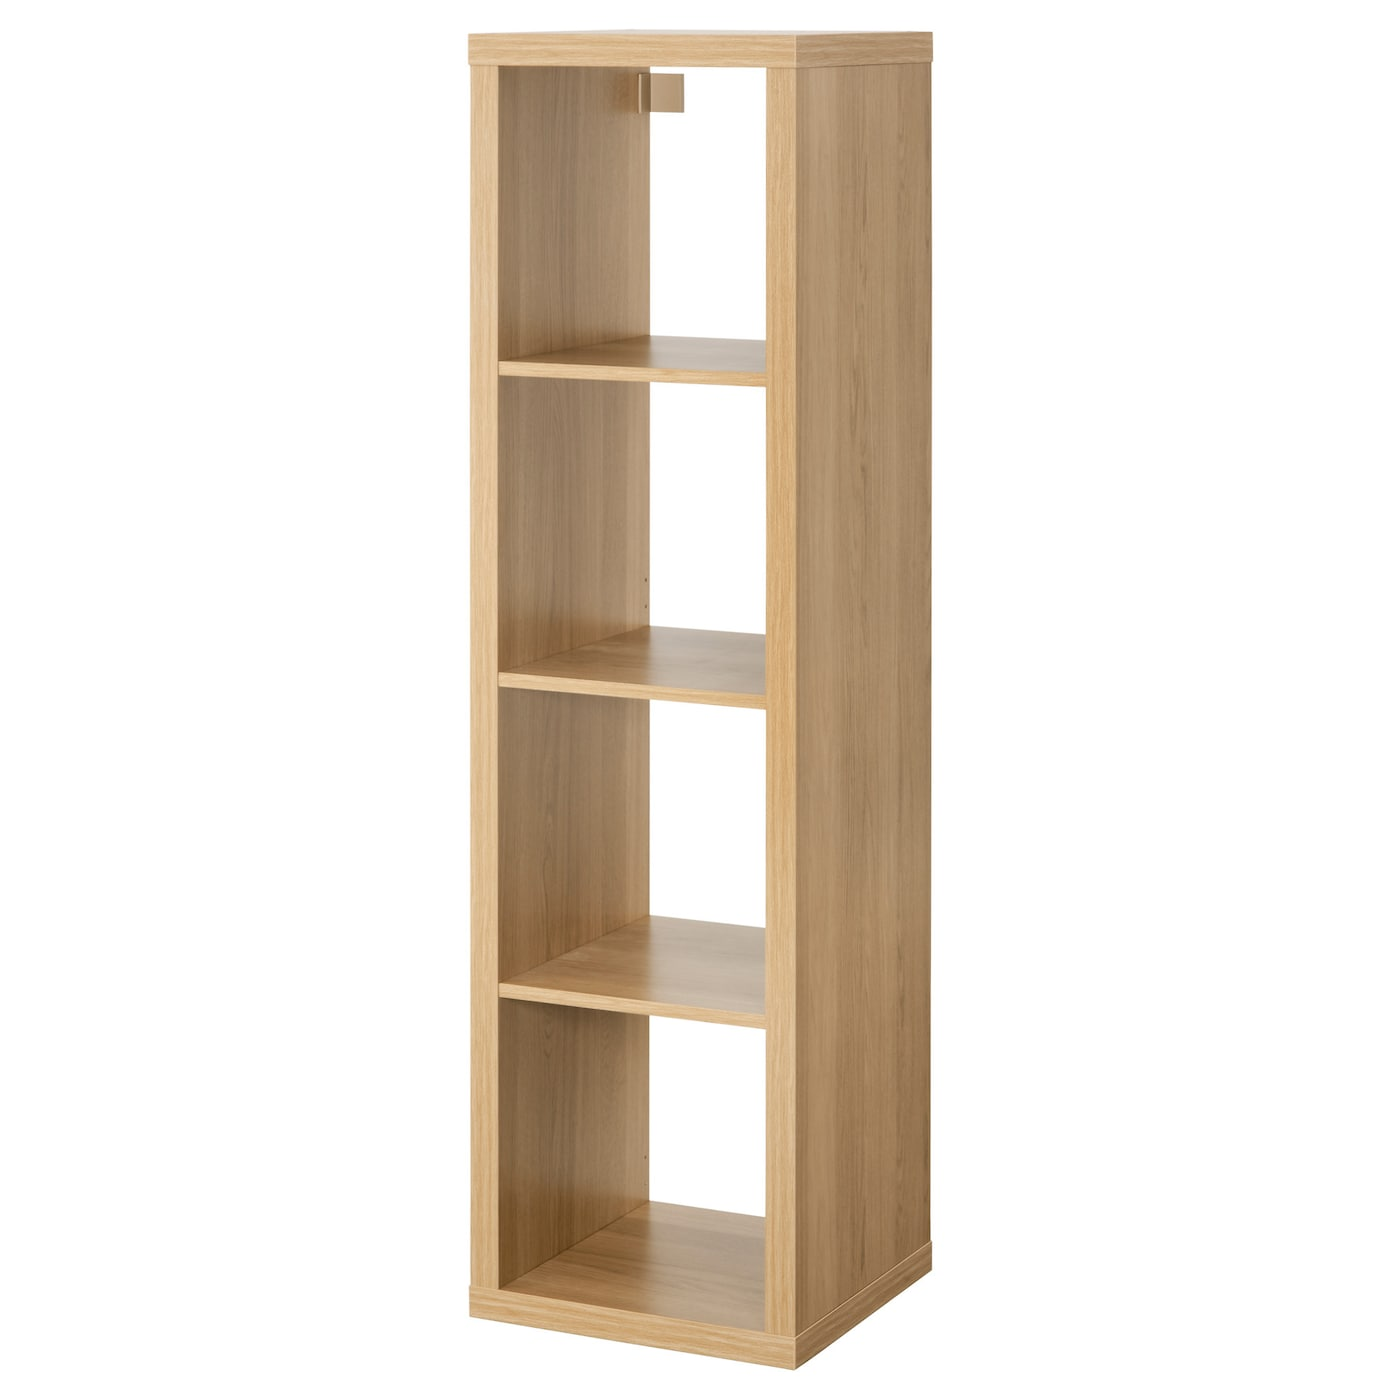 kallax shelving unit oak effect 42x147 cm ikea. Black Bedroom Furniture Sets. Home Design Ideas